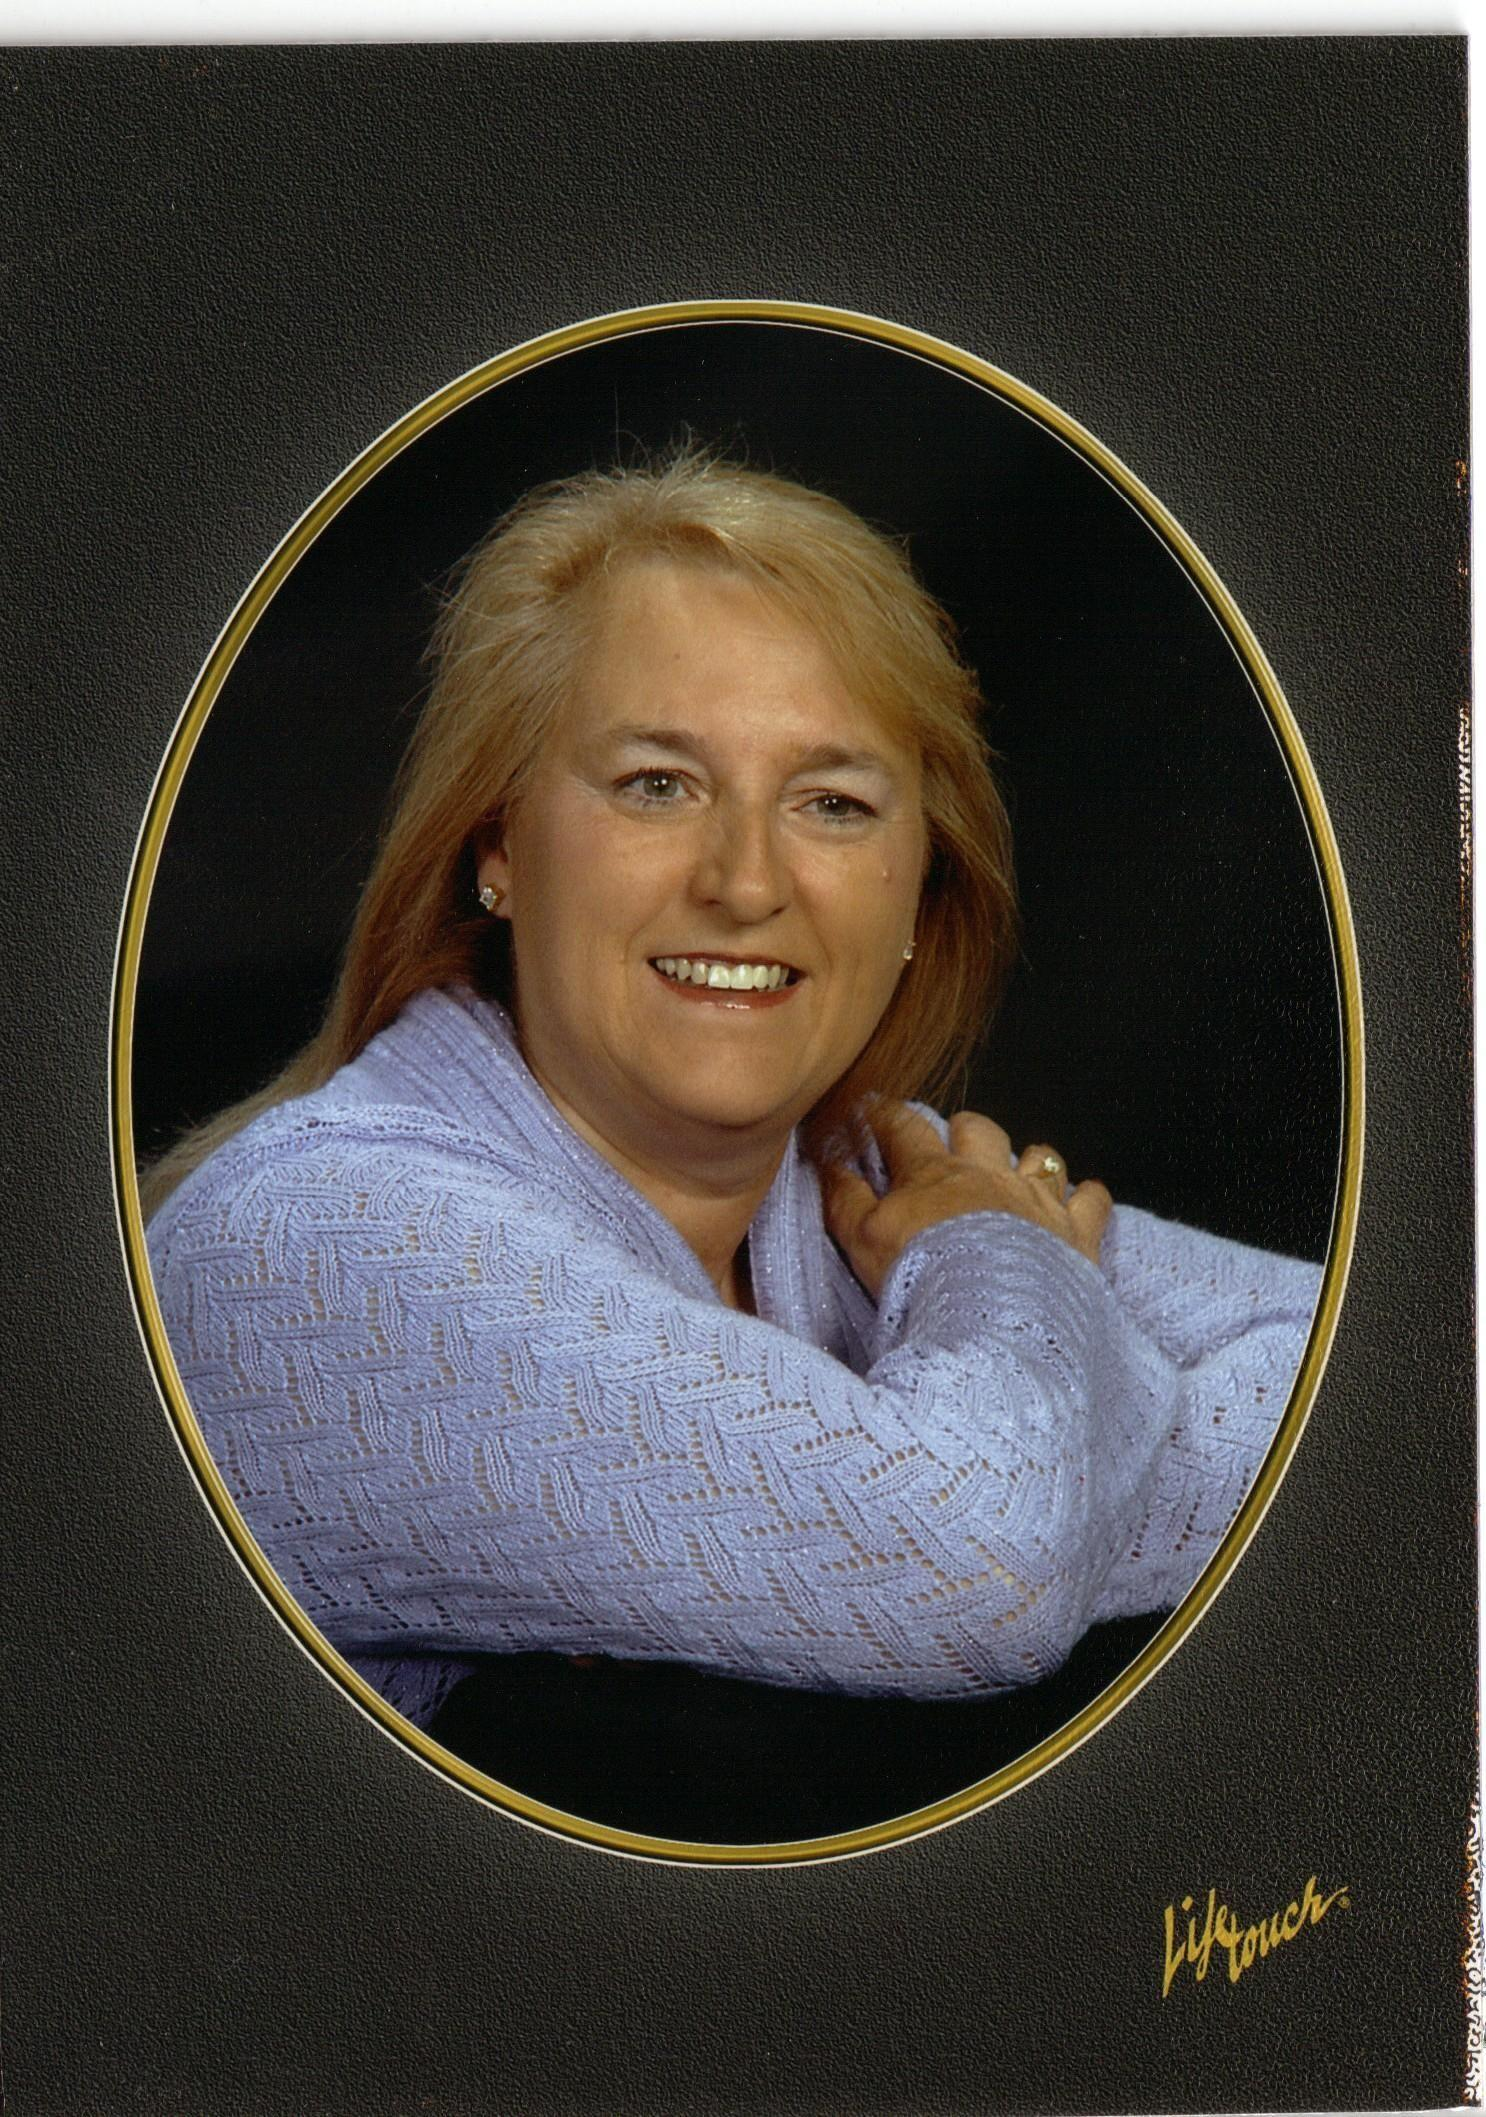 meet christian singles las vegas Single and over 50 is a premier matchmaking service that connects real professional singles with other like-minded mature singles meet successful redmond singles.